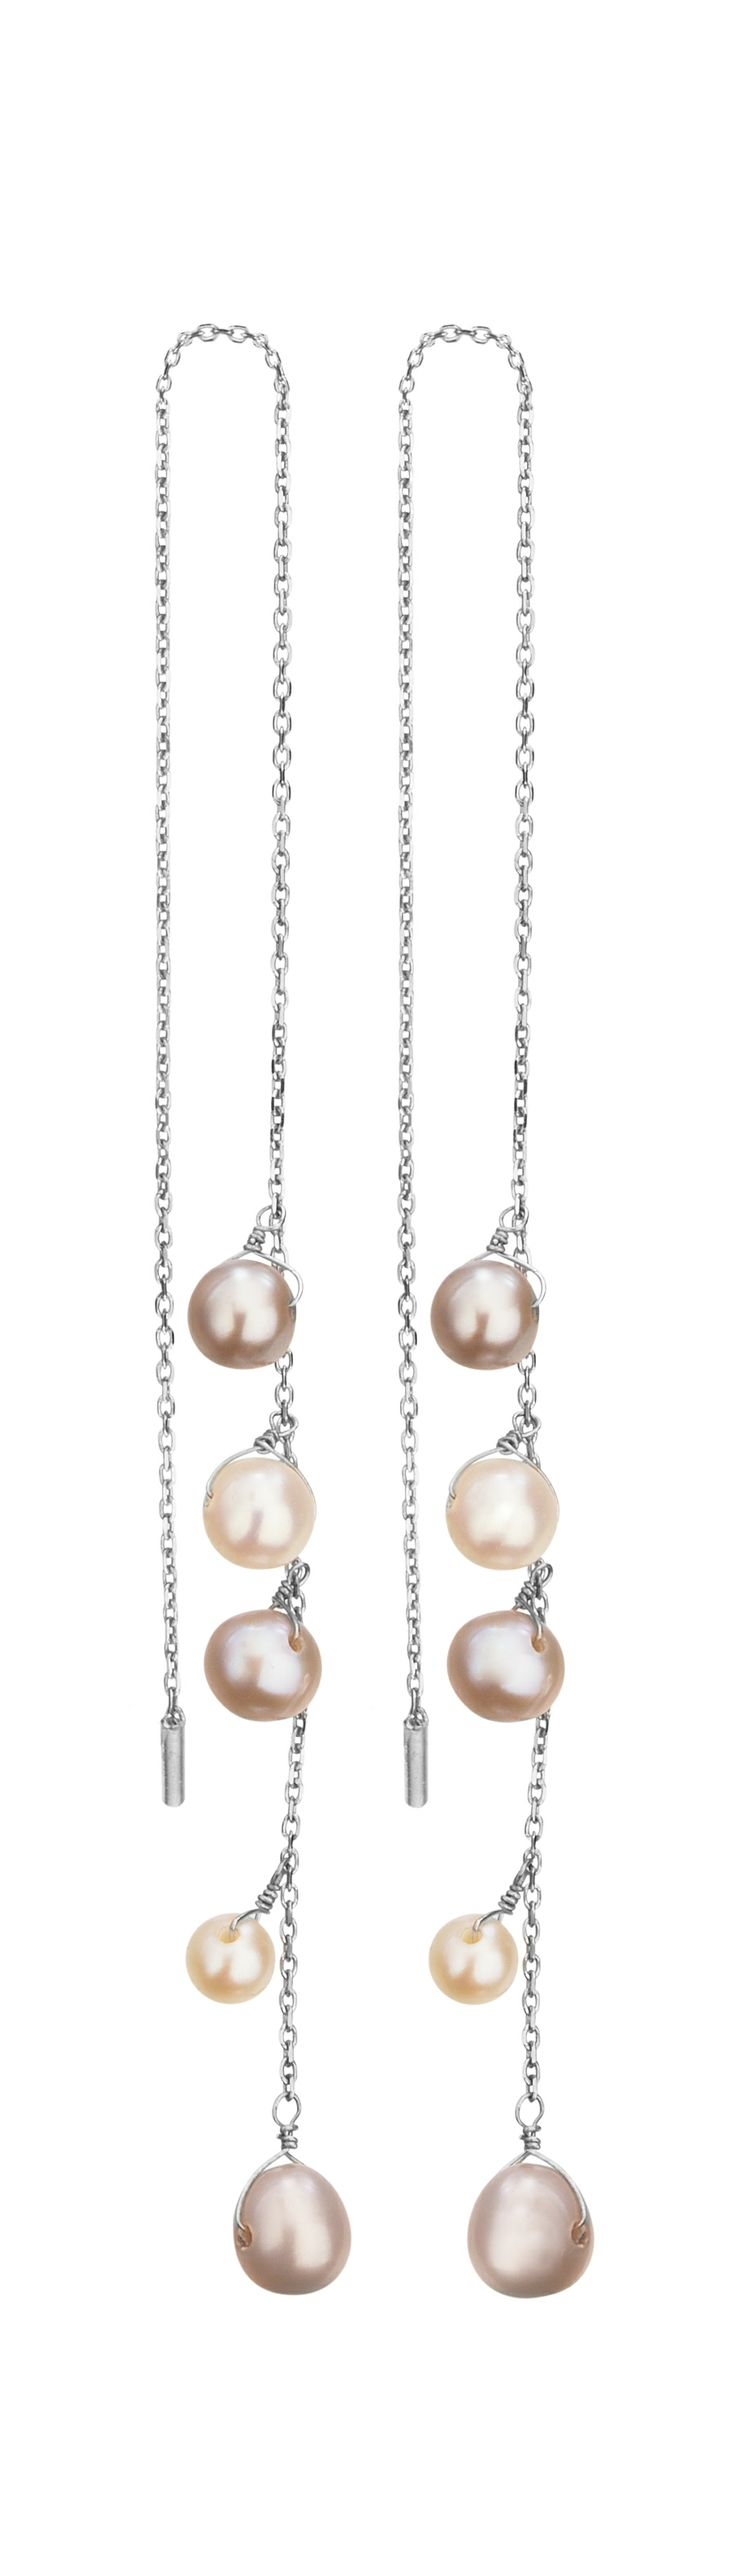 TOUS Suspiro earrings with cultured pearls